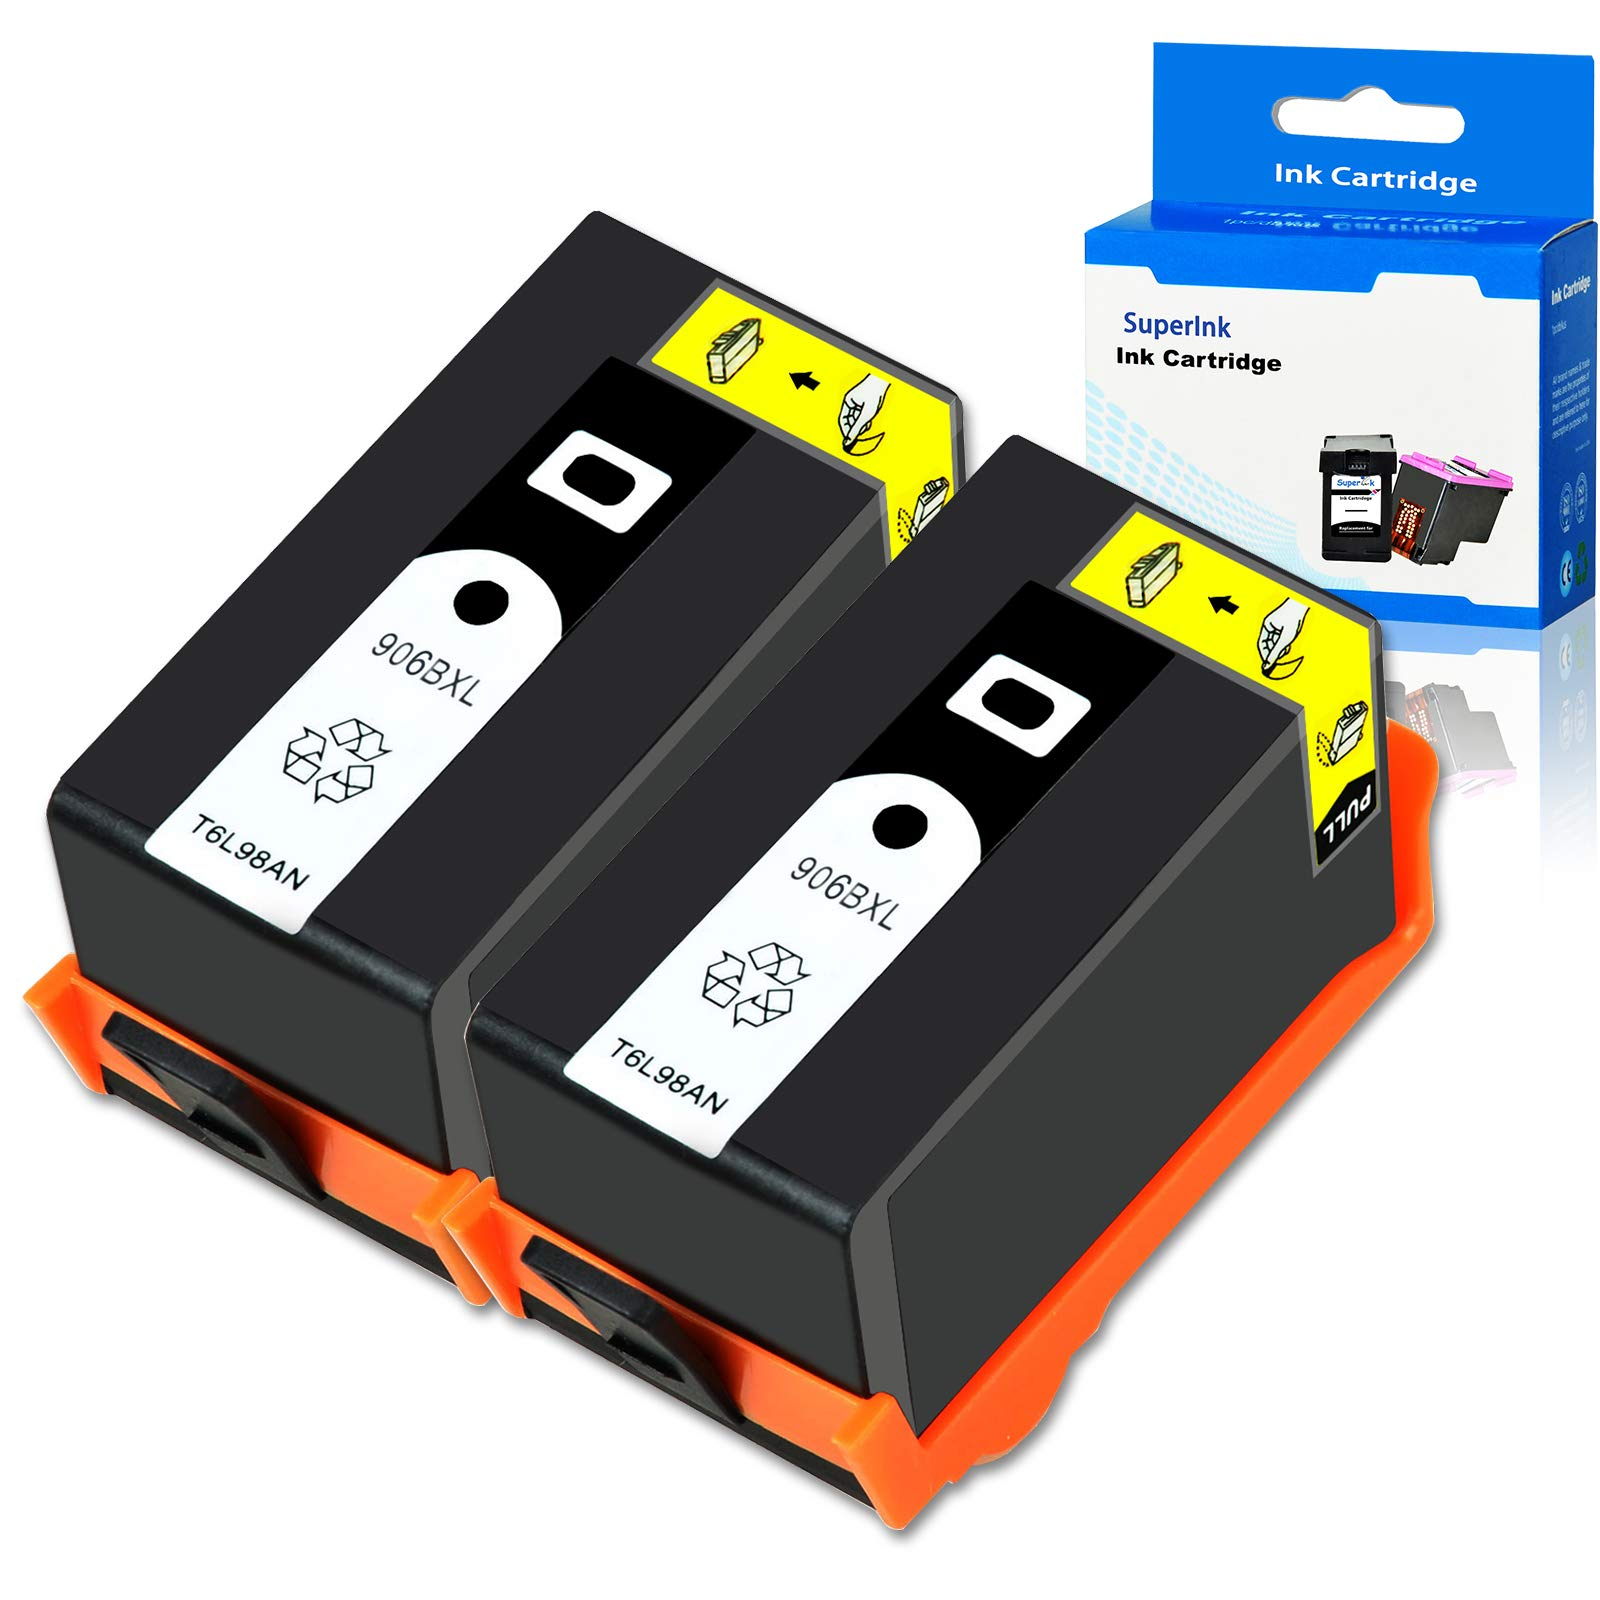 SuperInk Remanufactured Ink Cartridge Compatible for HP 906 XL 906XL T6L98AN with Chip use in OfficeJet Pro 6960 6968 6970 6974 6975 6978 All-in-One Printer (Large Black, 2-Pack)